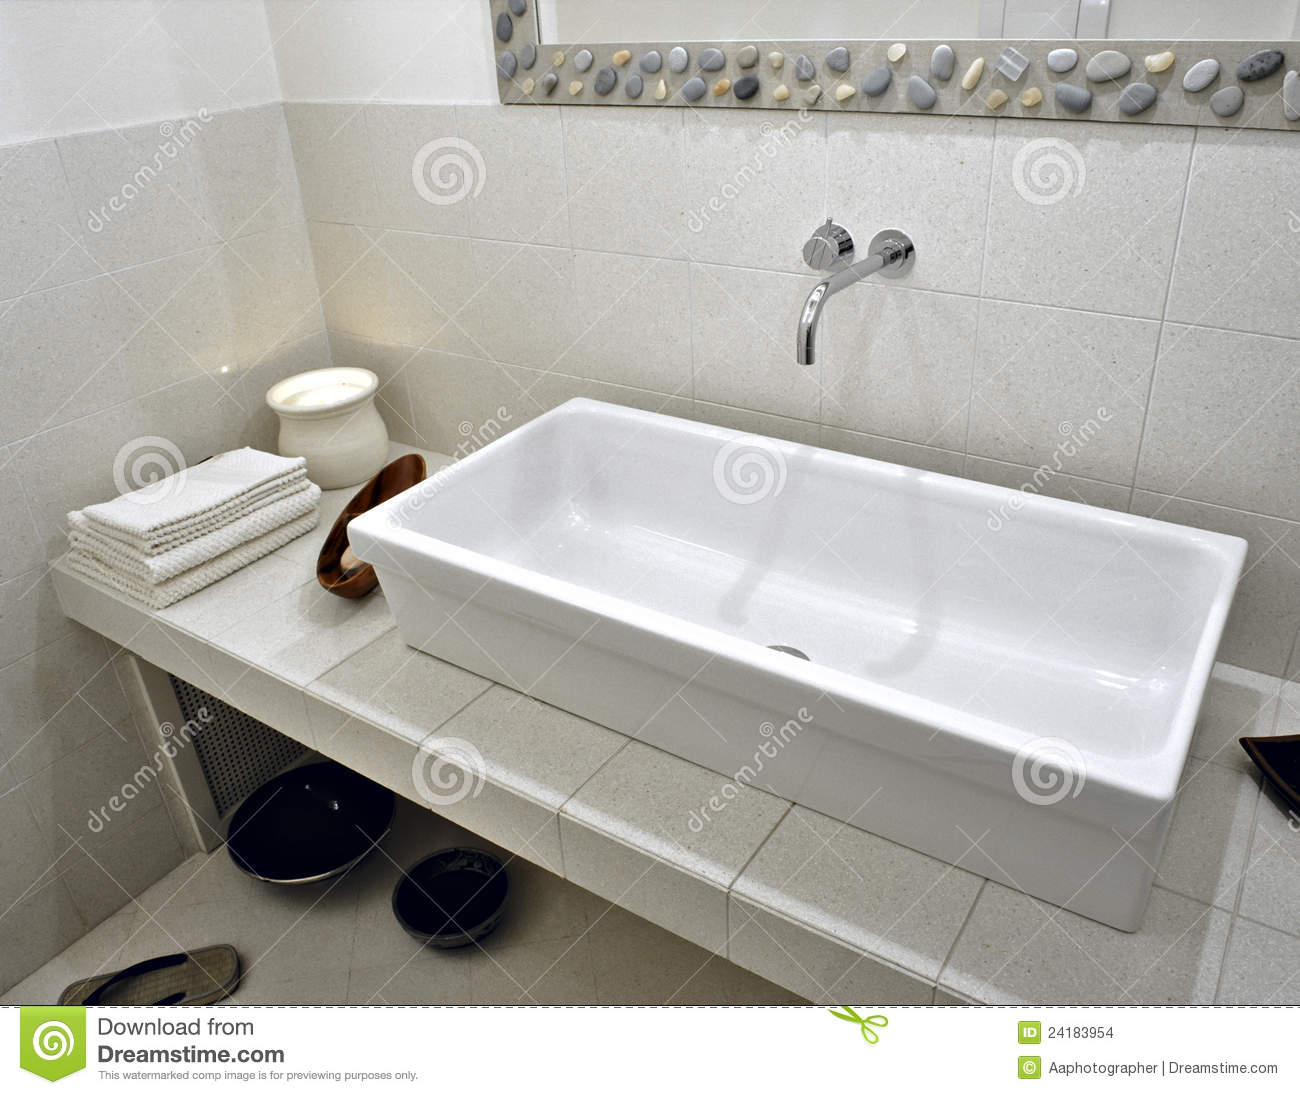 lavabo blanc dans la salle de bains moderne photo stock image 24183954. Black Bedroom Furniture Sets. Home Design Ideas